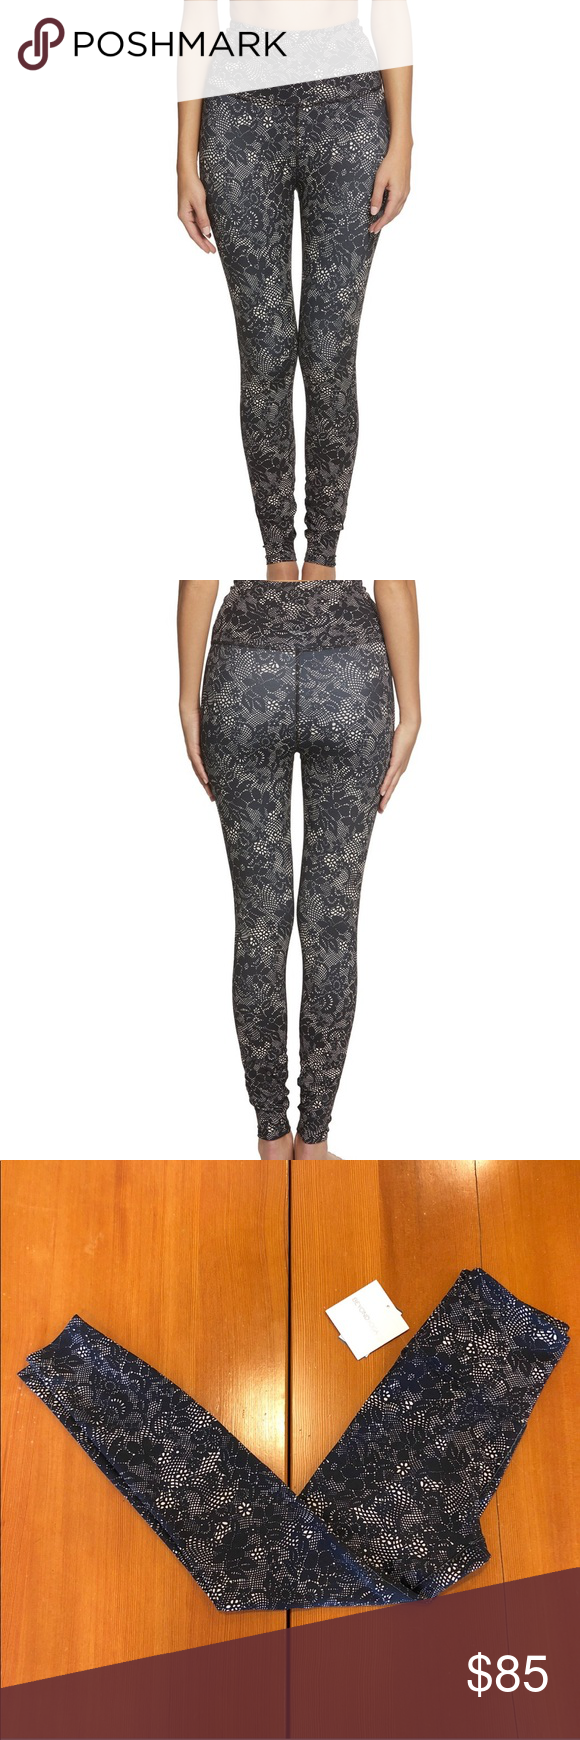 1ca9eabf43 Beyond Yoga Olympus High Waisted Midi Legging NEW WITH TAGS! These  exceptionally soft leggings are sophisticated and subtle to take you from  studio to ...